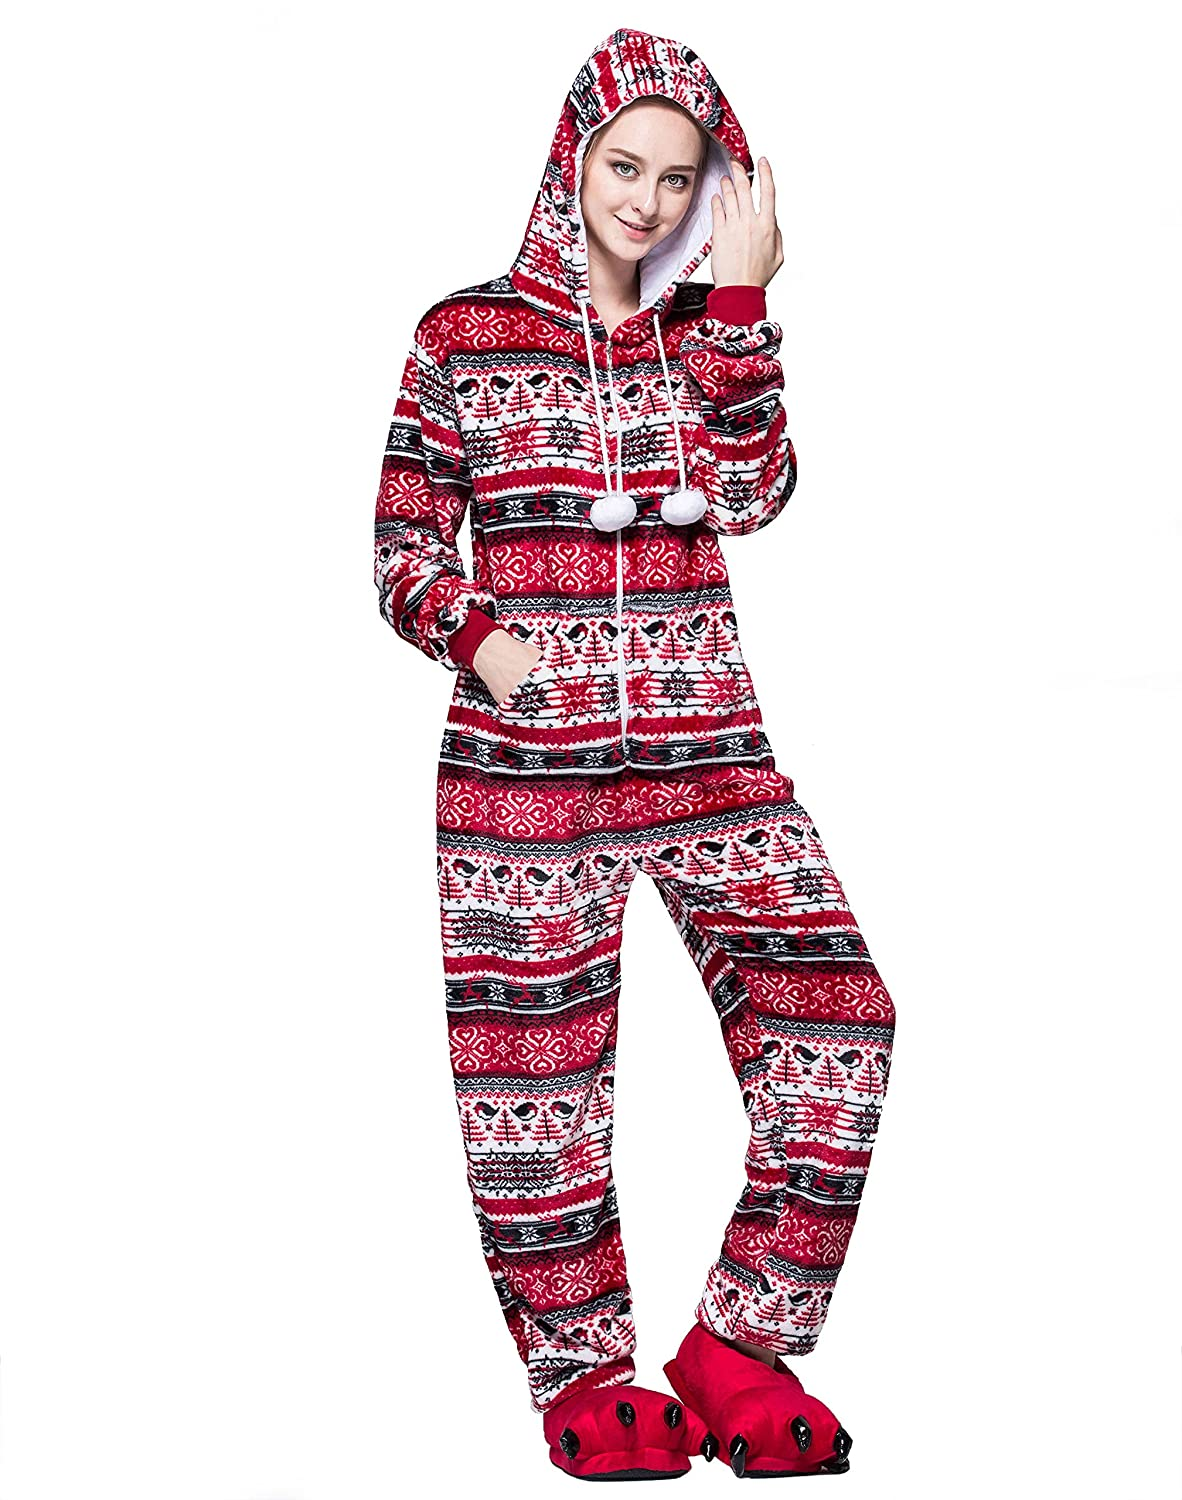 Plus Size Christmas Pajamas.Adult Onesie Pajamas For Women Or Men Christmas With Plus